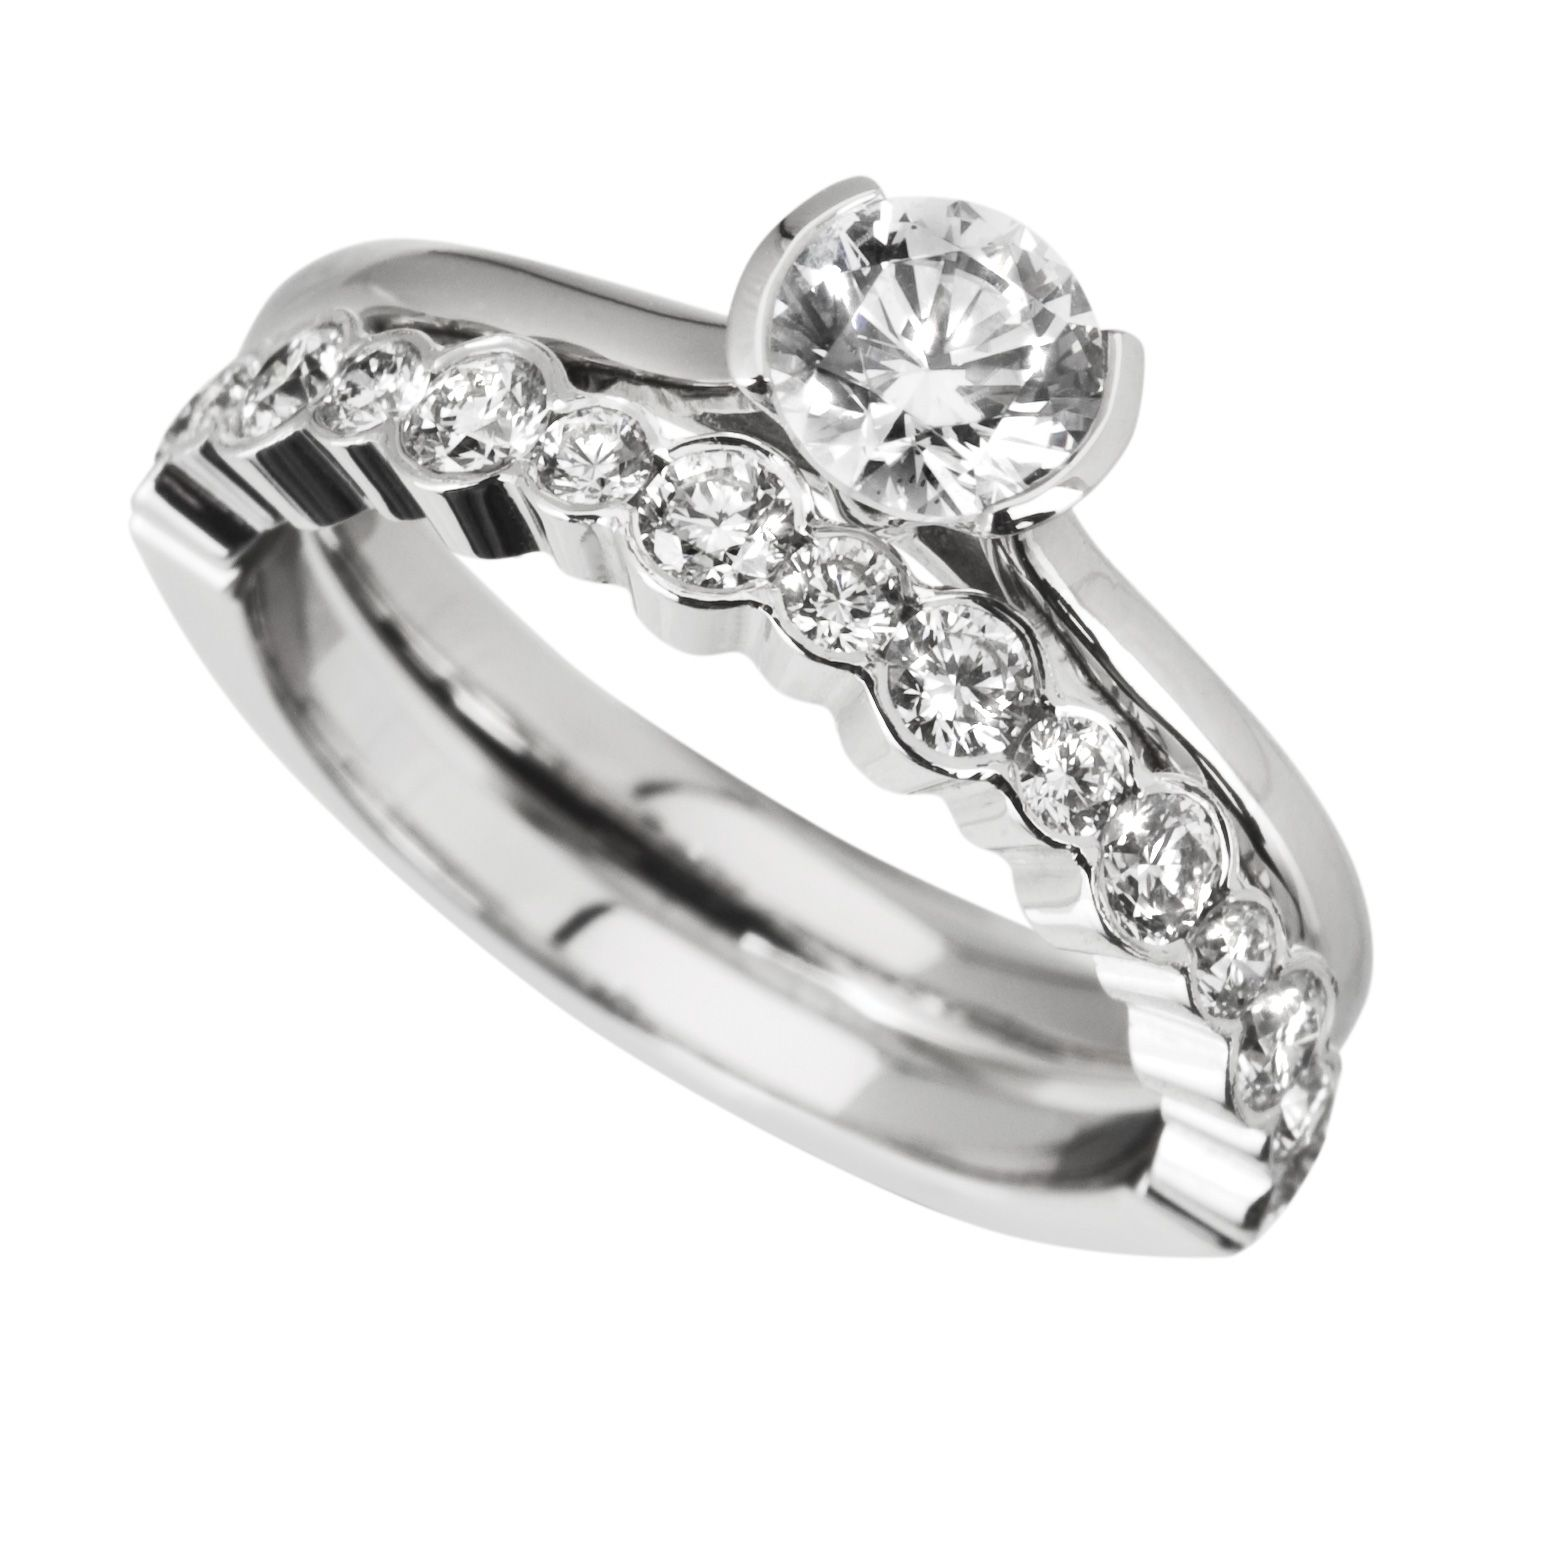 wedding rings sets images of wedding rings sets Rub Over Engagement Ring with Matching Diamond